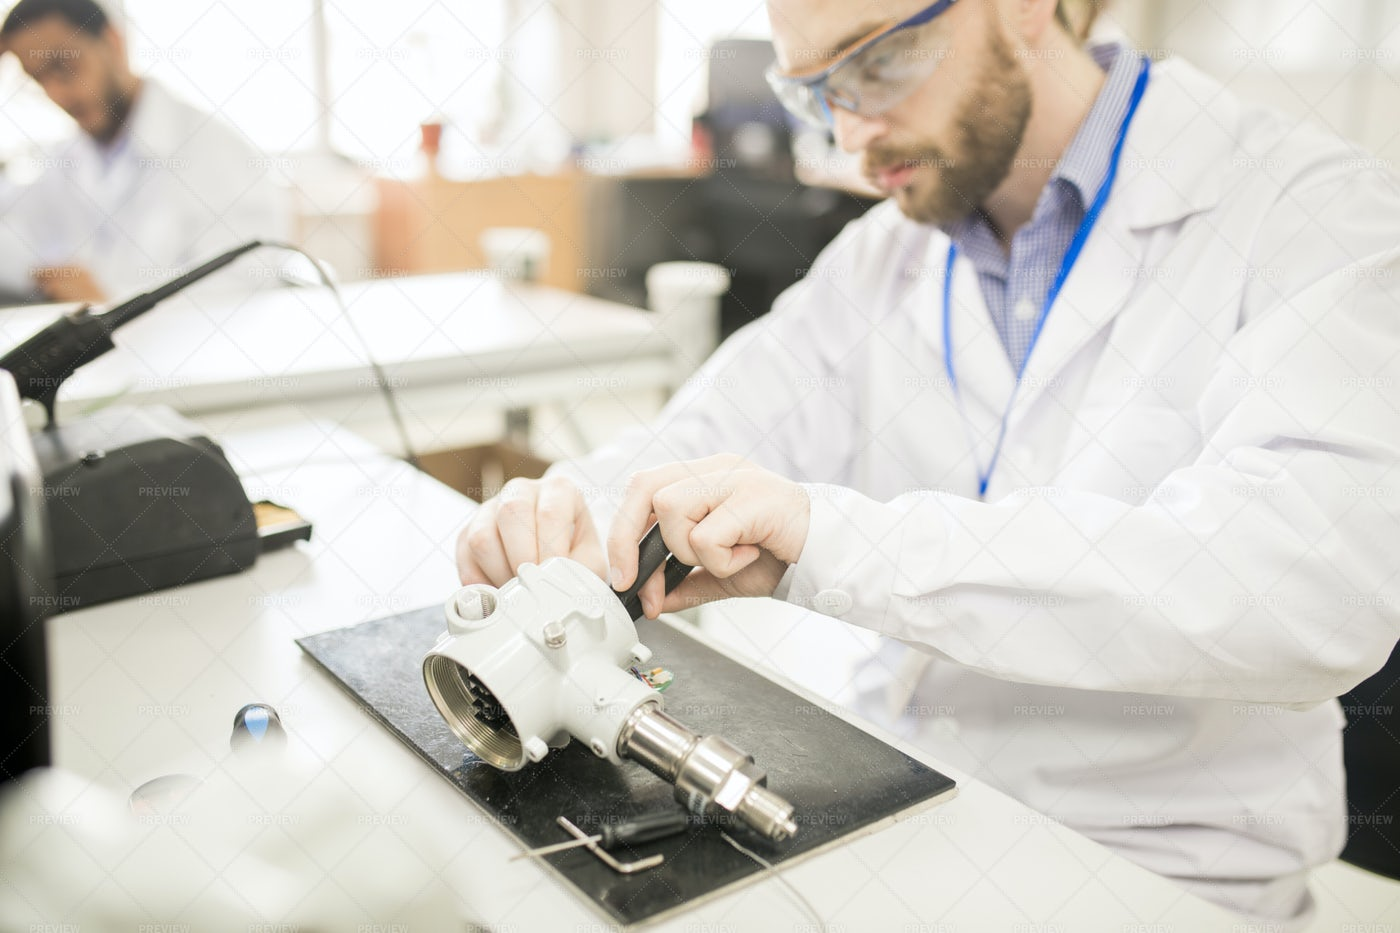 Concentrated Technician Finding Out...: Stock Photos